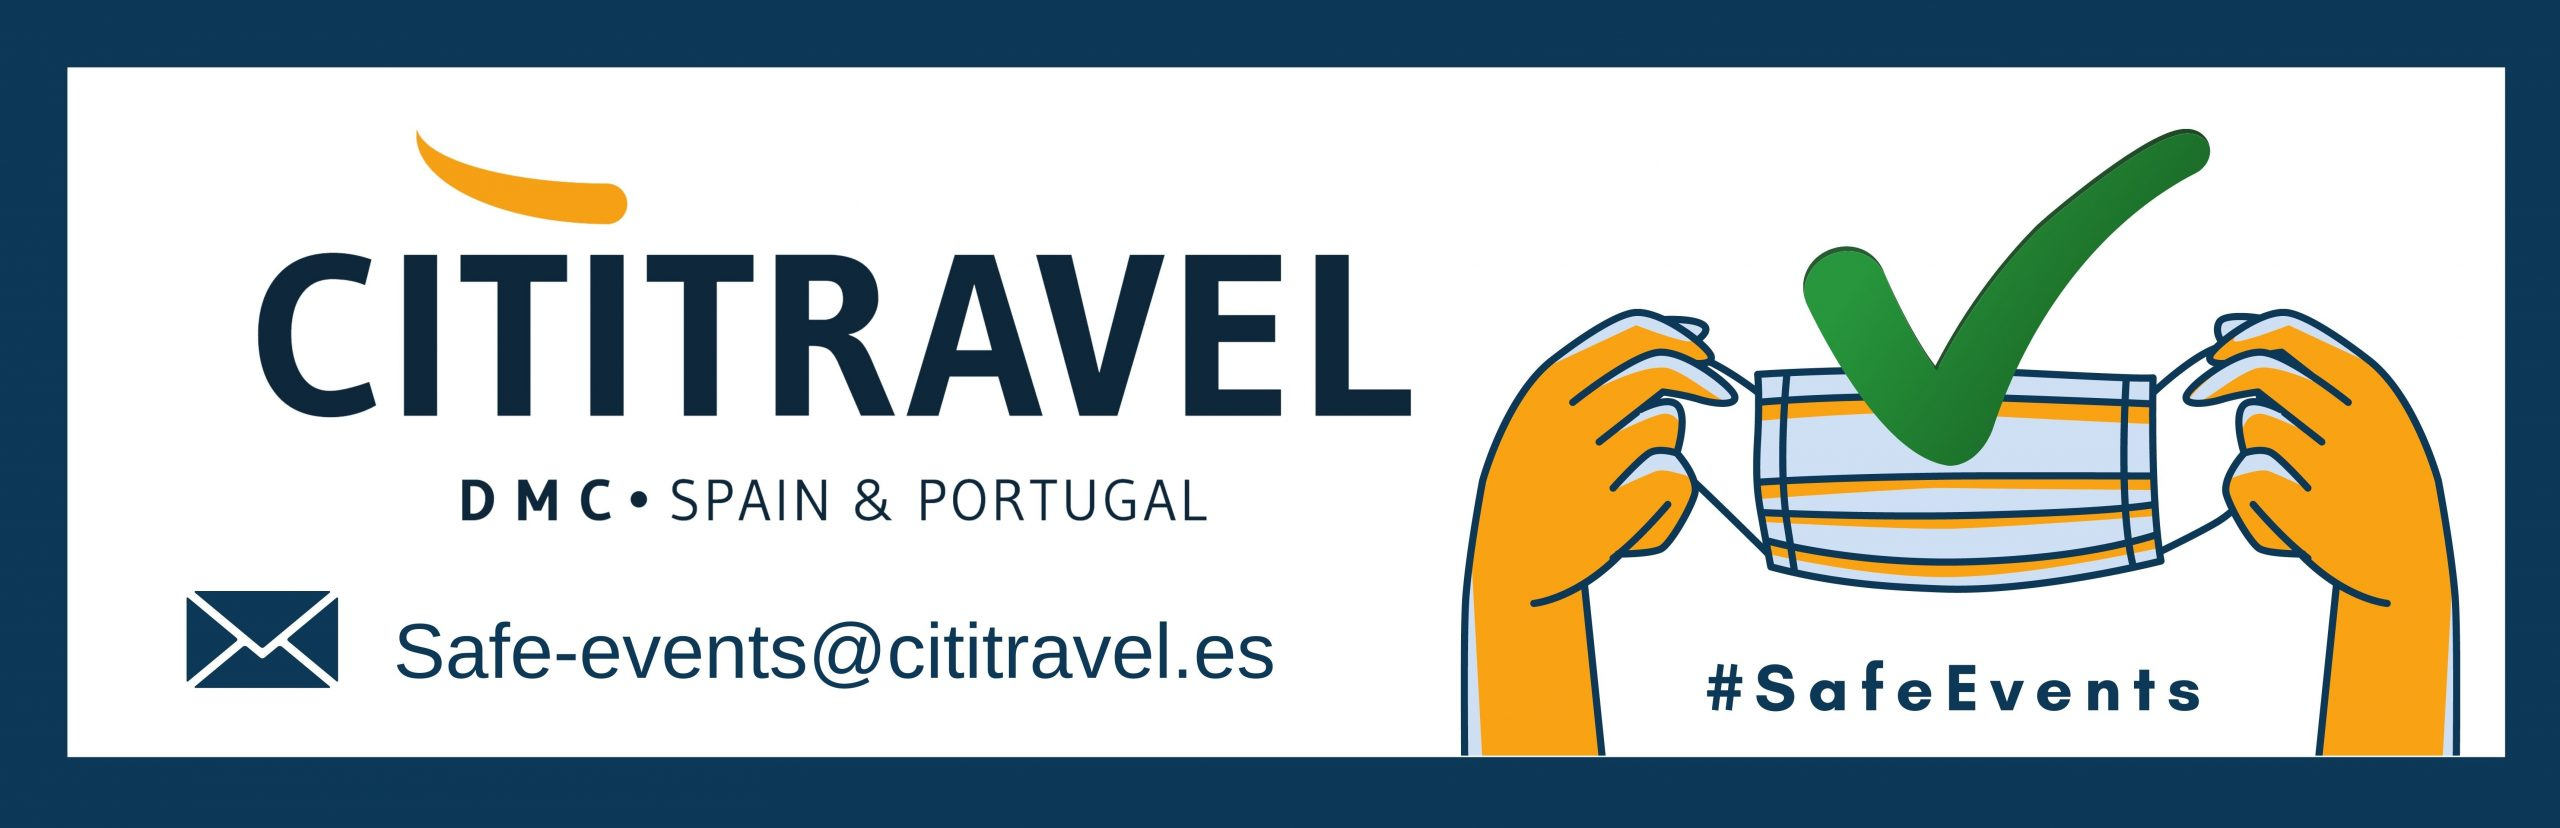 Safe Events with Cititravel DMC